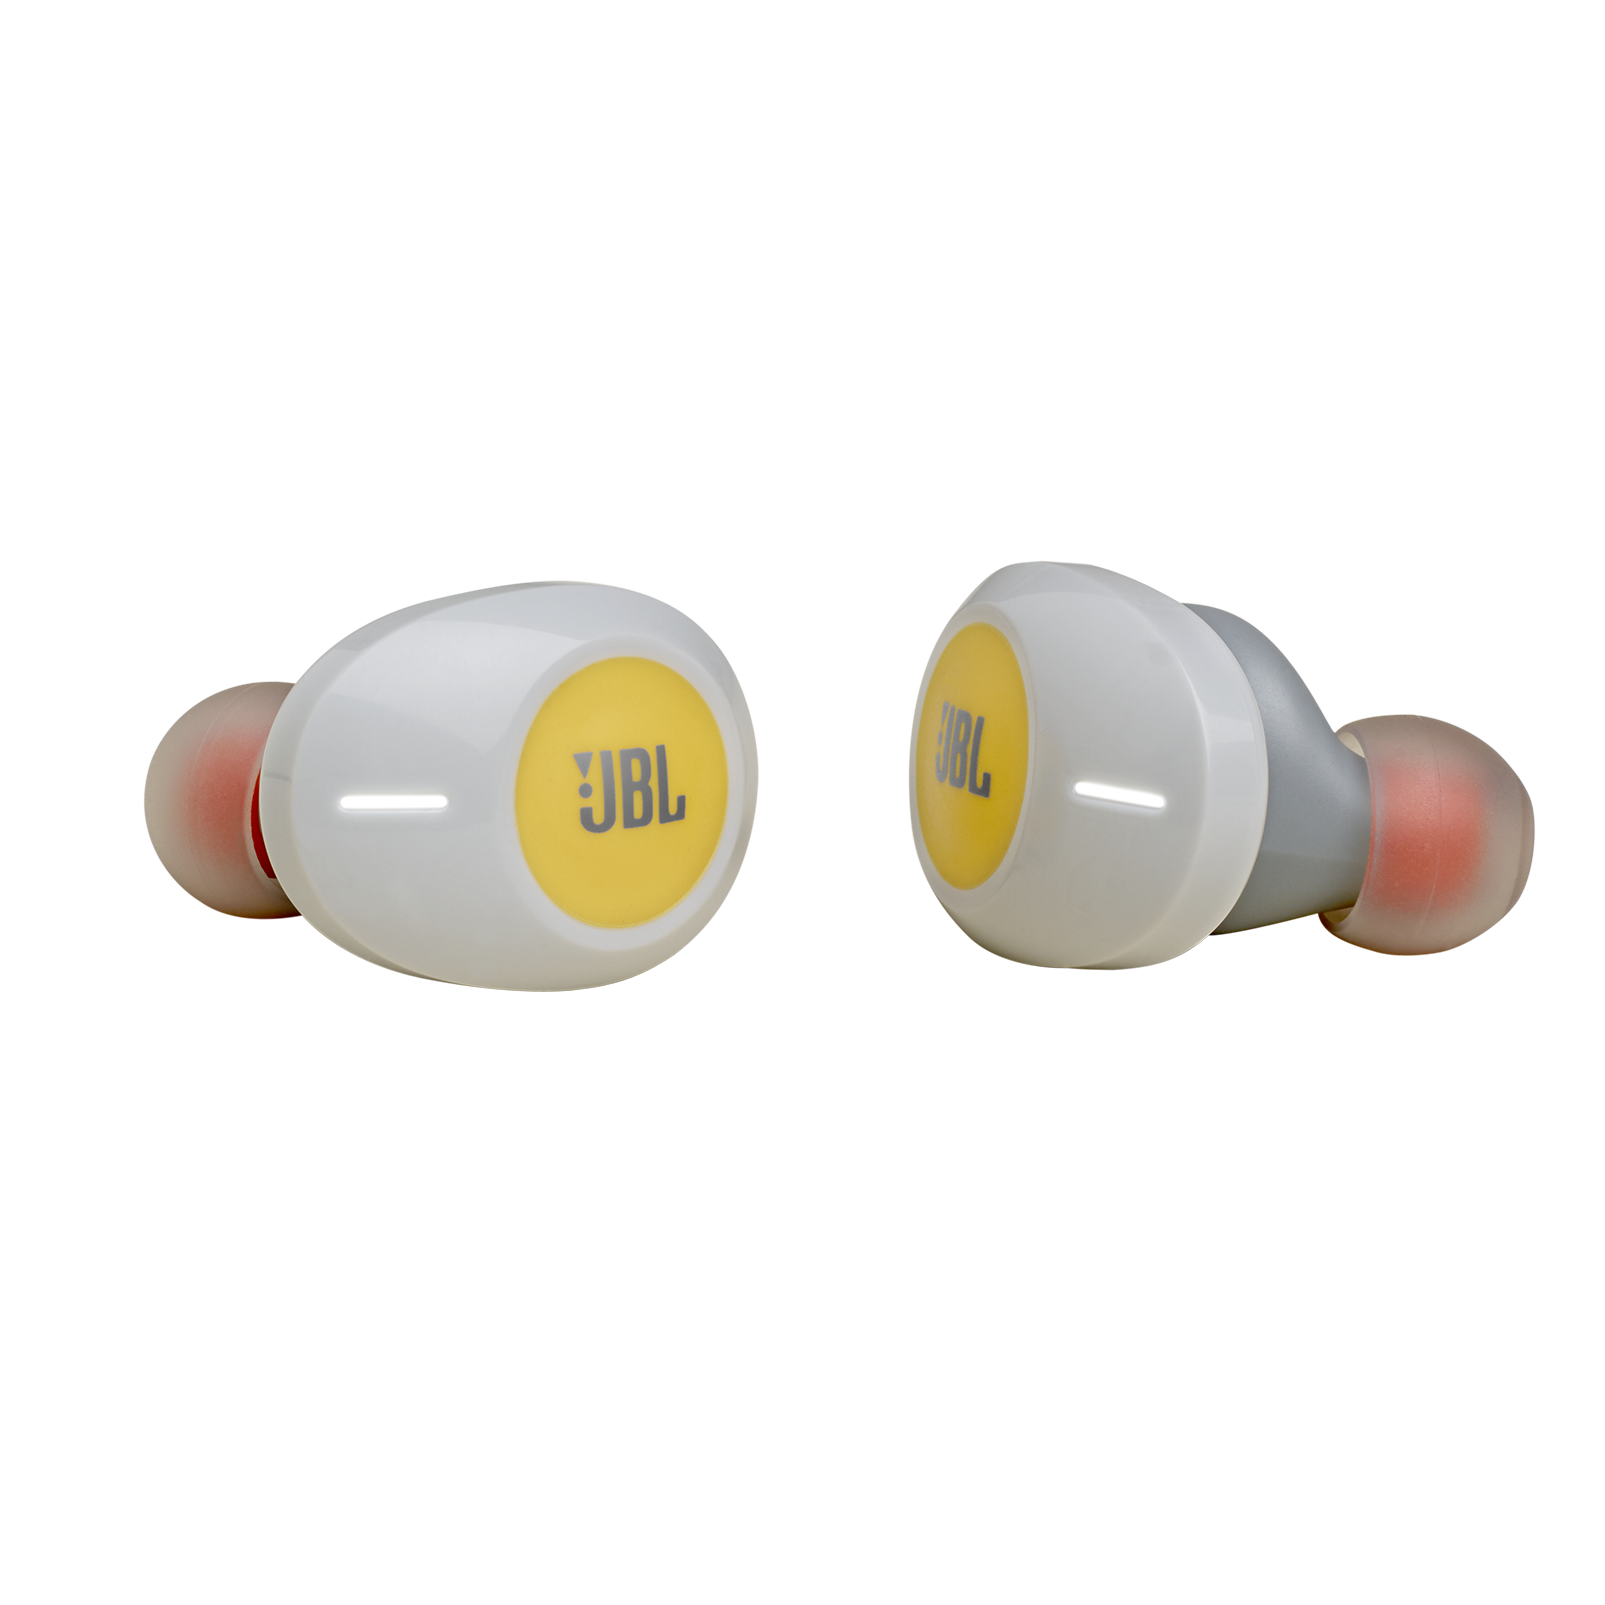 JBL TUNE 120TWS - Yellow - Truly wireless in-ear headphones. - Hero